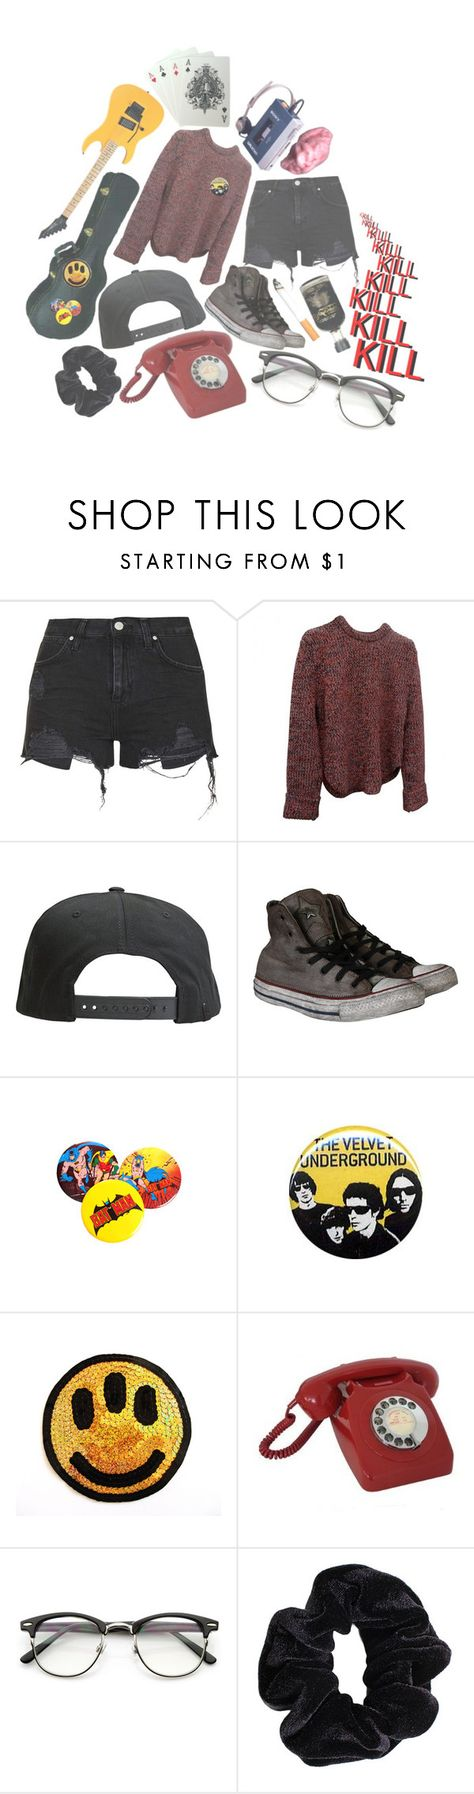 """""""i have no idea"""" by coffee-crumbs ❤ liked on Polyvore featuring Topshop, Tavik Swimwear, Converse, Forum, EXE', CO, ZeroUV, American Apparel, yellow and black"""